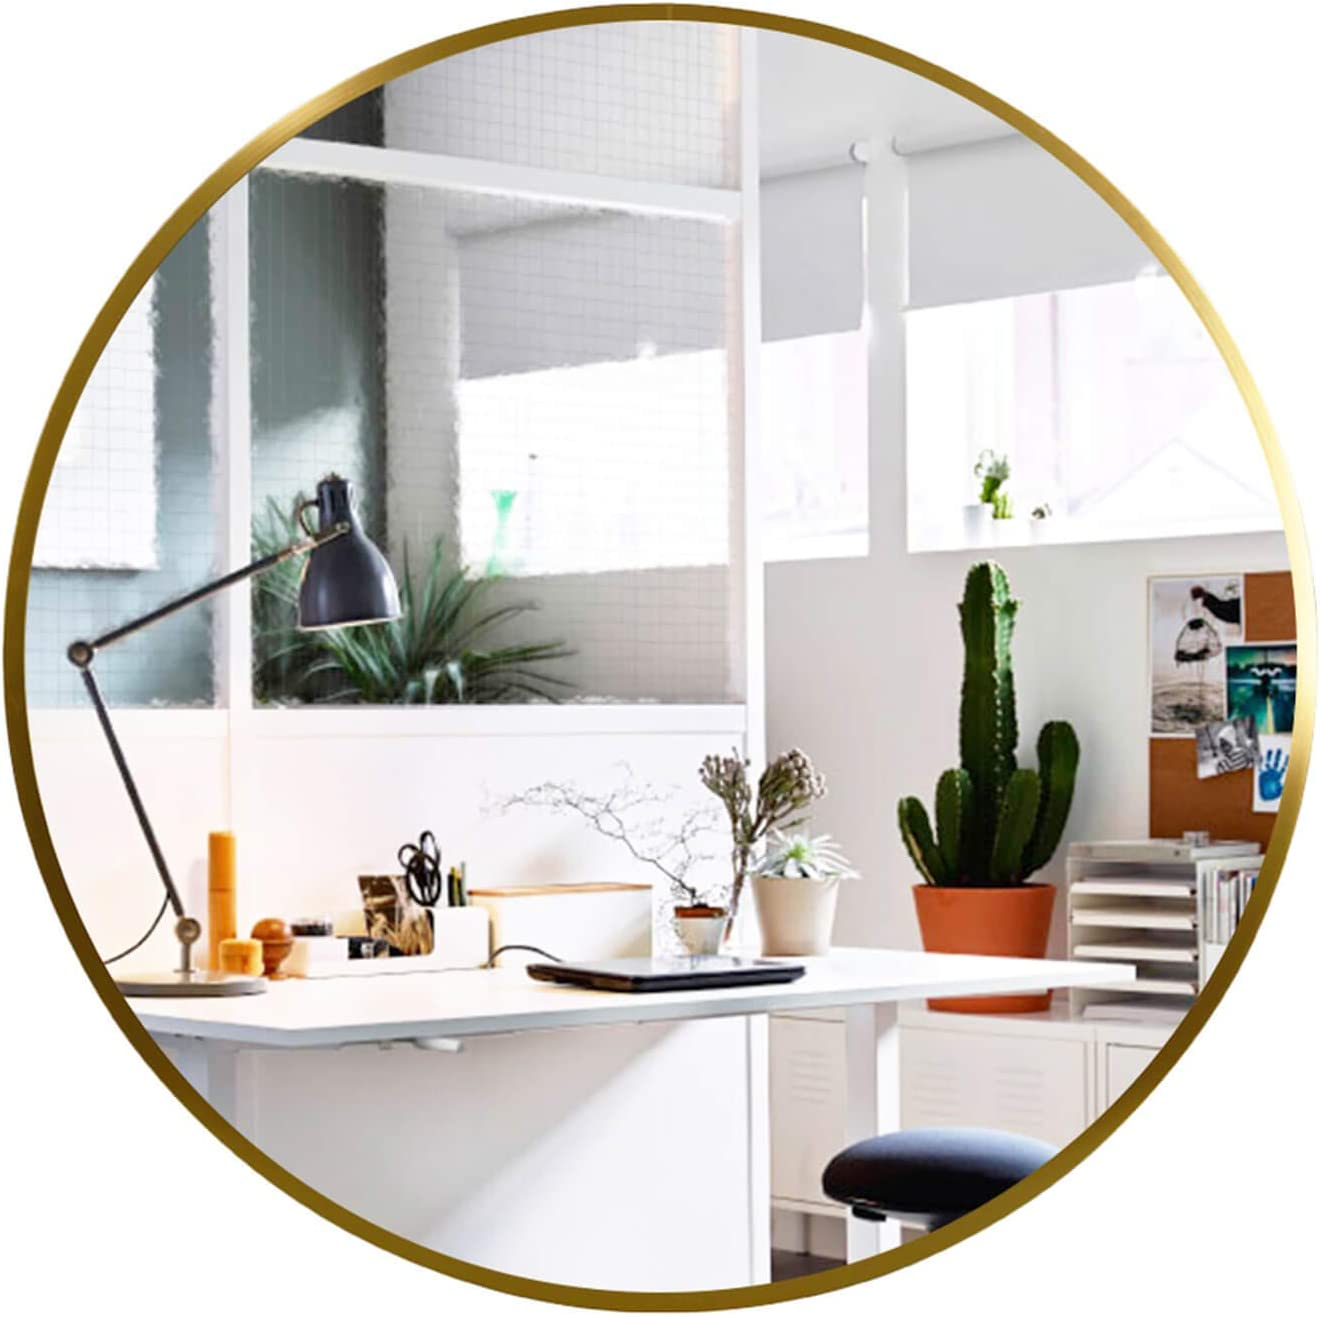 Amazon Com Elevens Wall Mirror Popular 20 Inch Round Wall Mounted Decorative Mirror Metal Frame Best For Vanity Washrooms Bathroom And Living Rooms Gold Furniture Decor